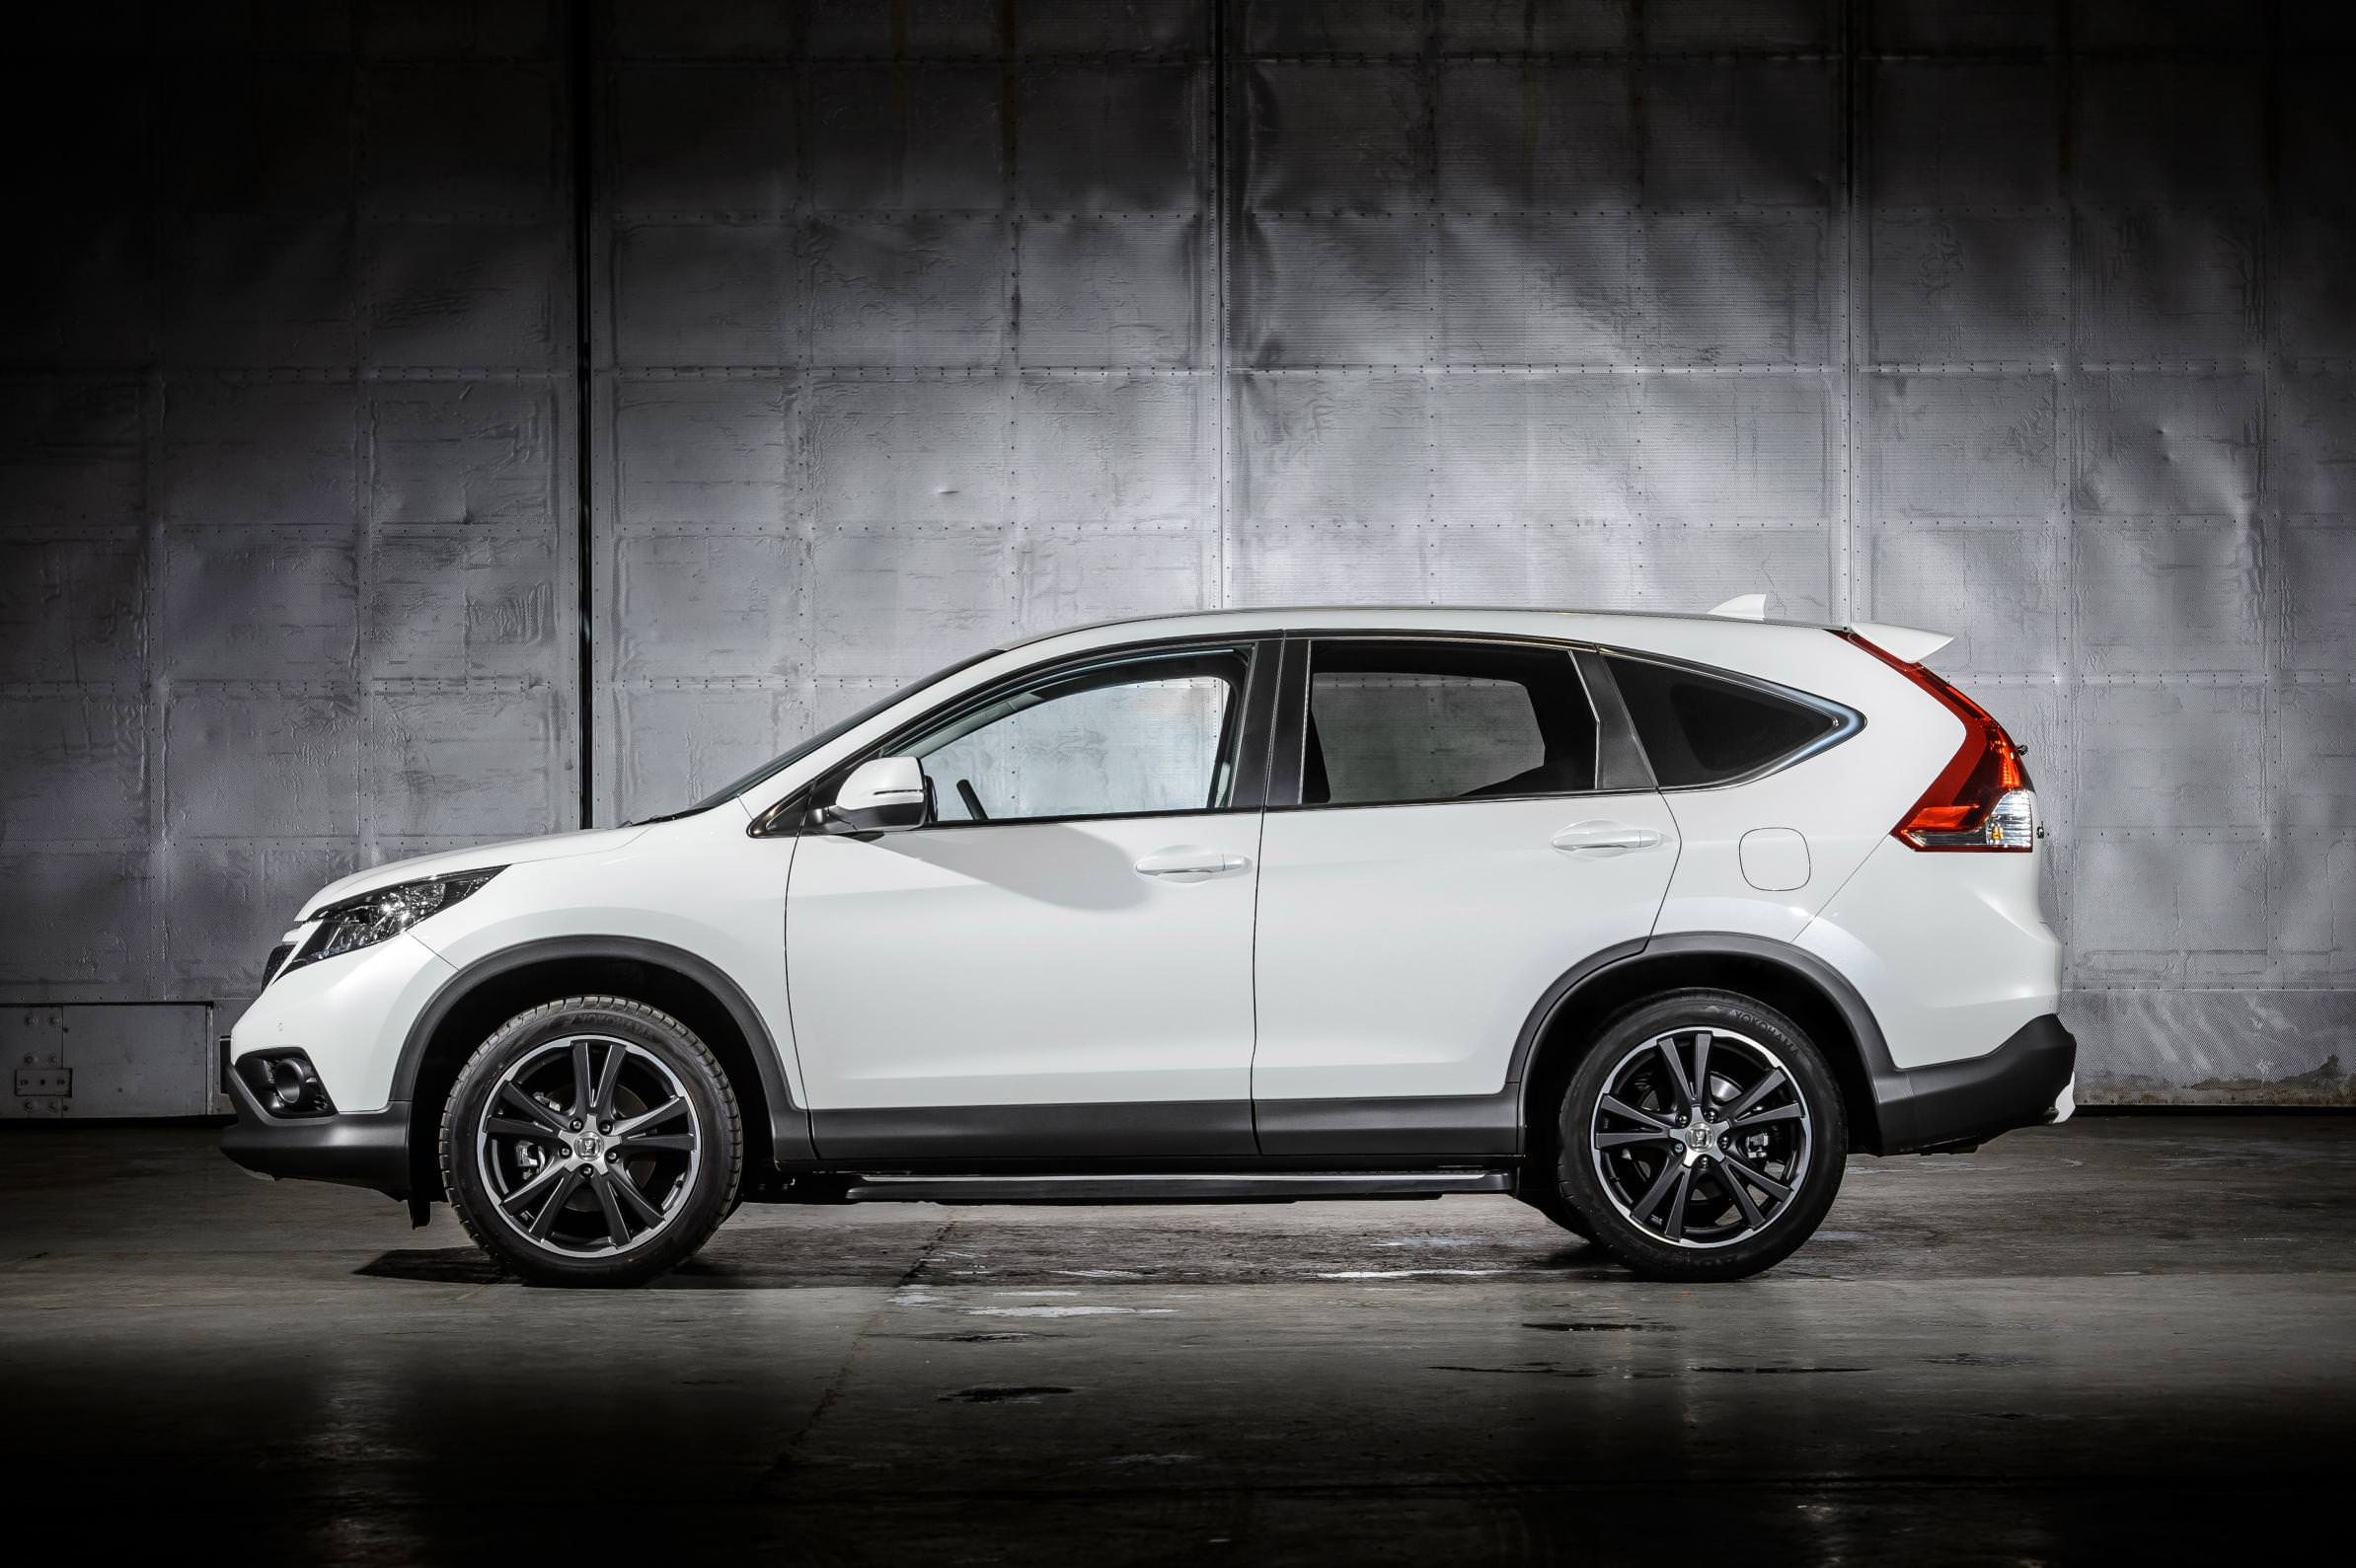 White Honda CR-V parked inside warehouse